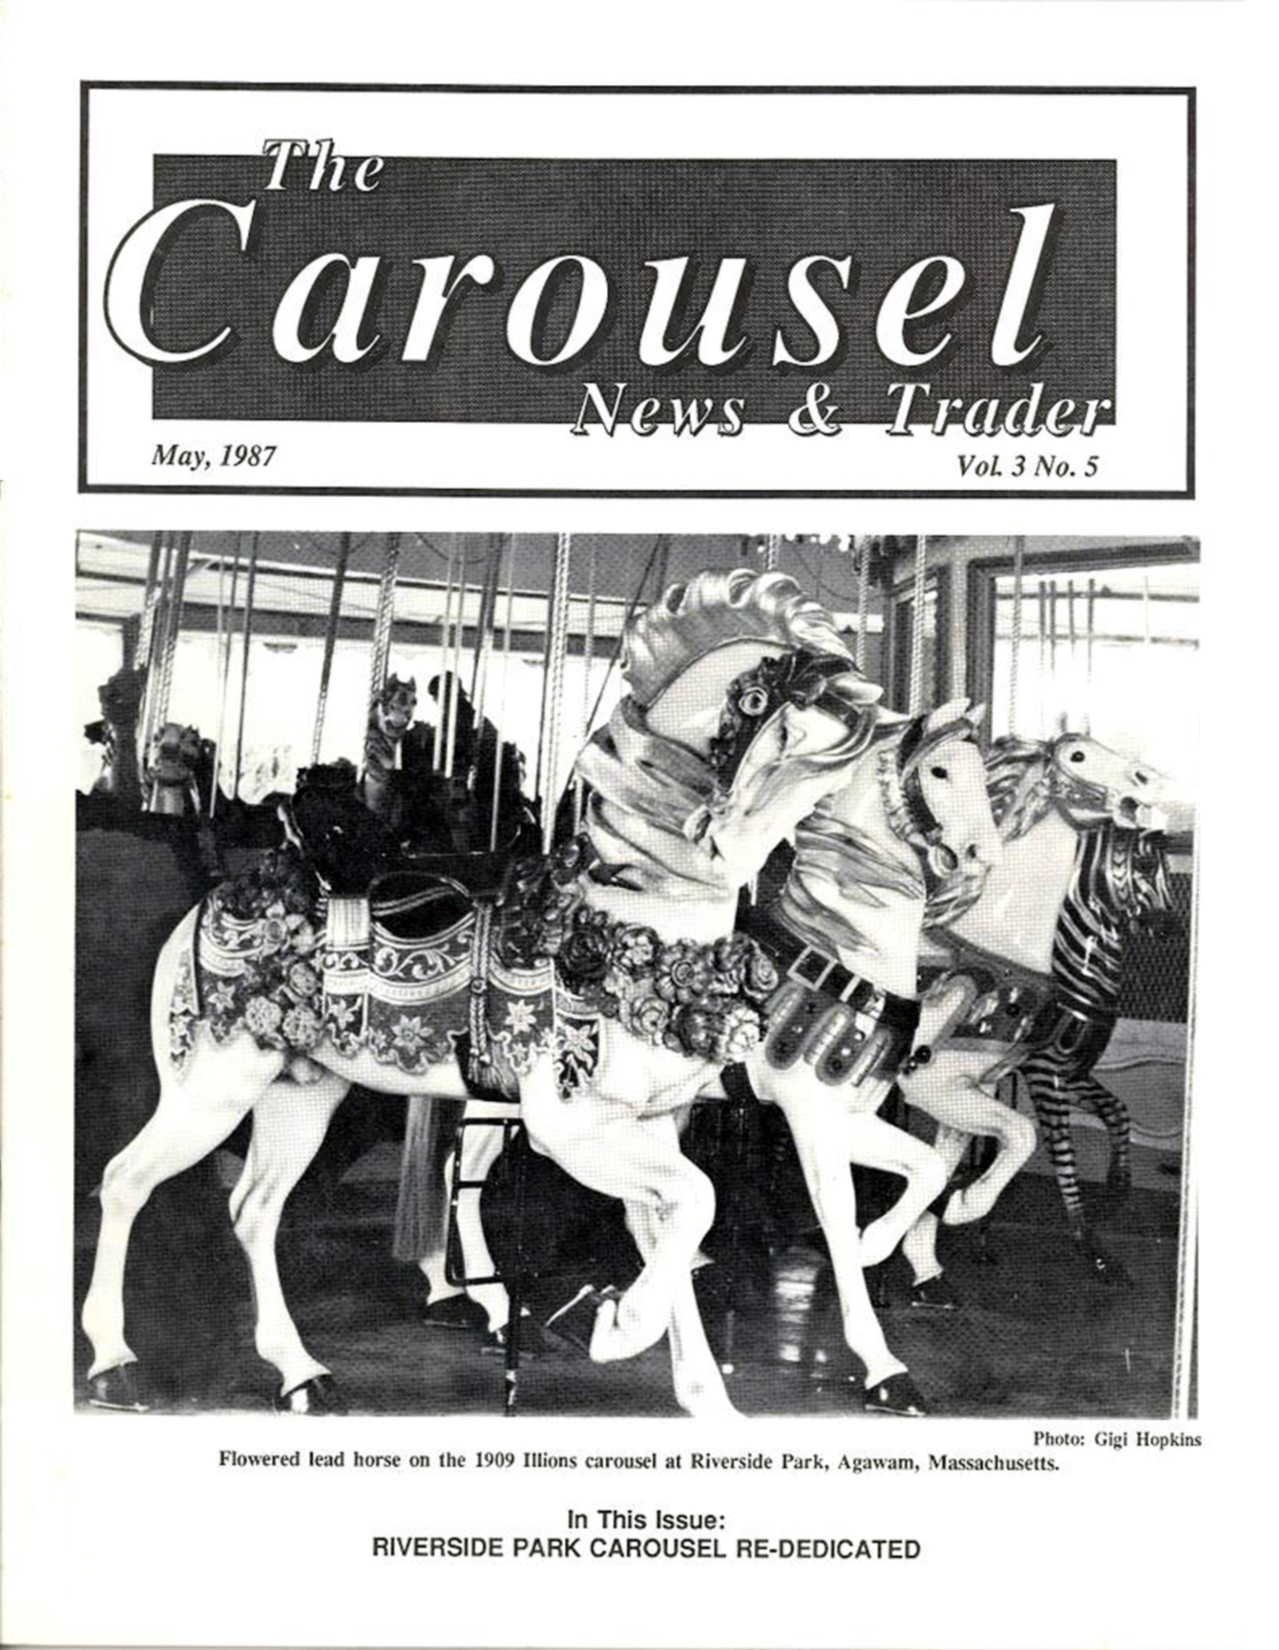 Carousel-News-cover-05_1987-Riverside-Park-Illions